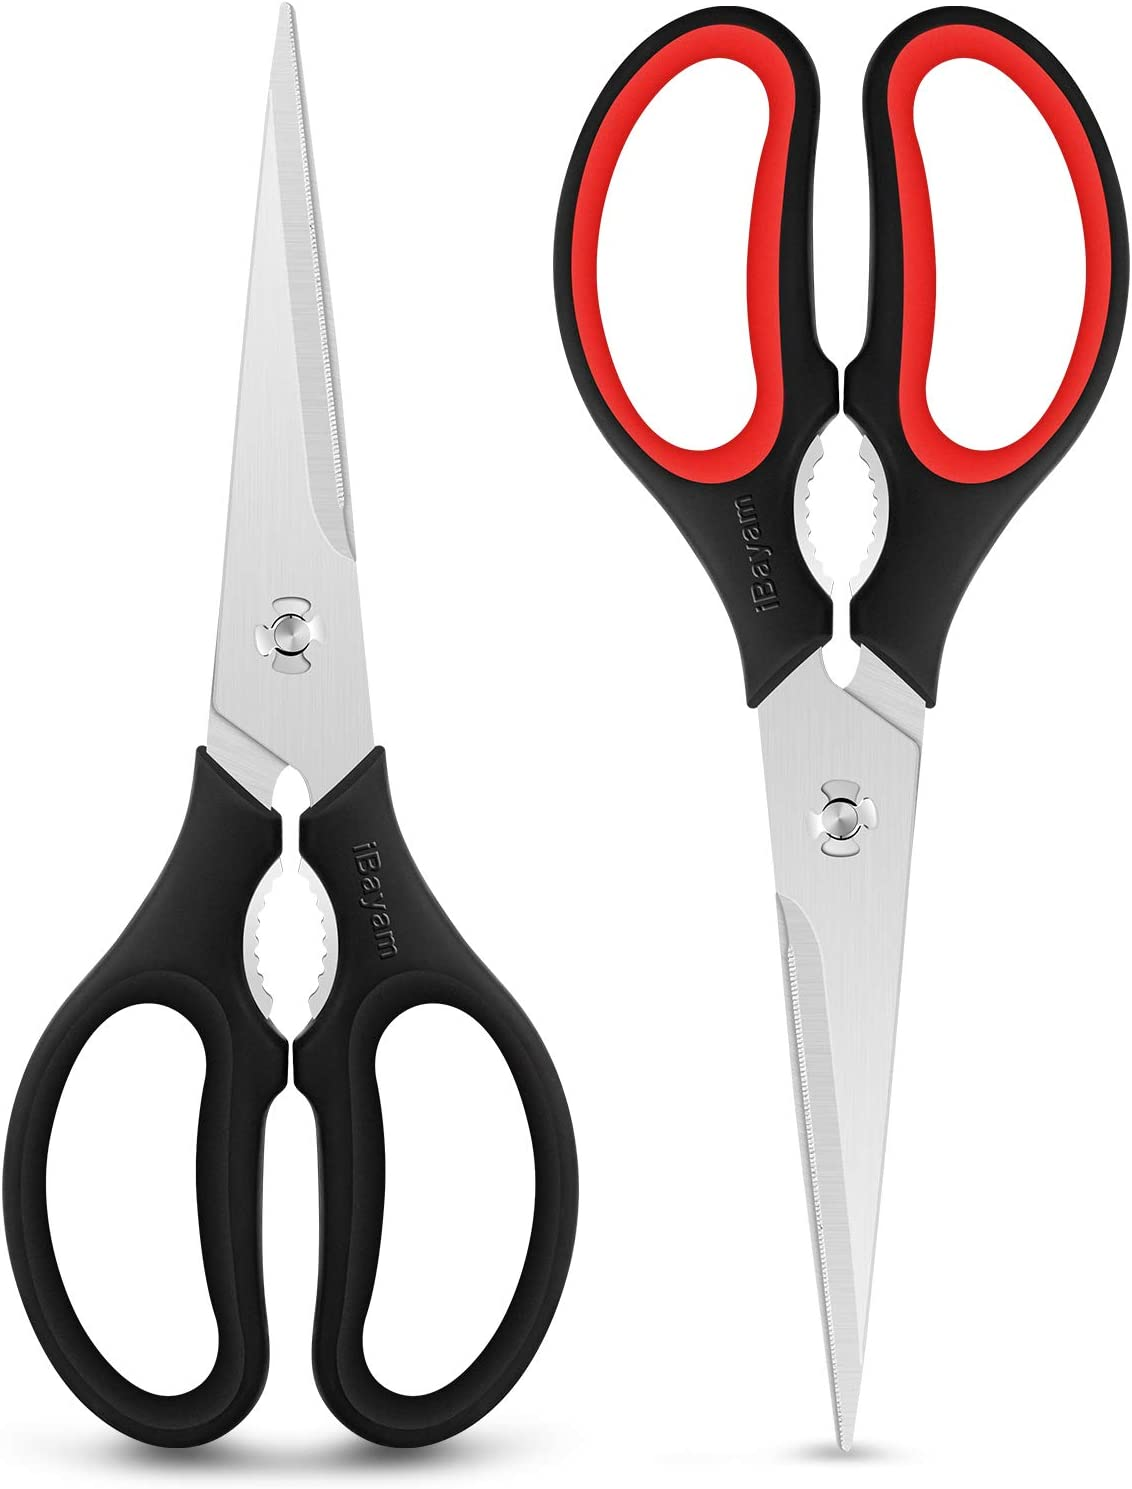 Kitchen Scissors, Heavy Duty Kitchen Shears, 2-Pack 9 Inch Dishwasher Safe Come Apart Food Scissors, Multipurpose Stainless Steel Sharp Cooking Scissors for Chicken, Poultry, Fish, Meat, Herbs